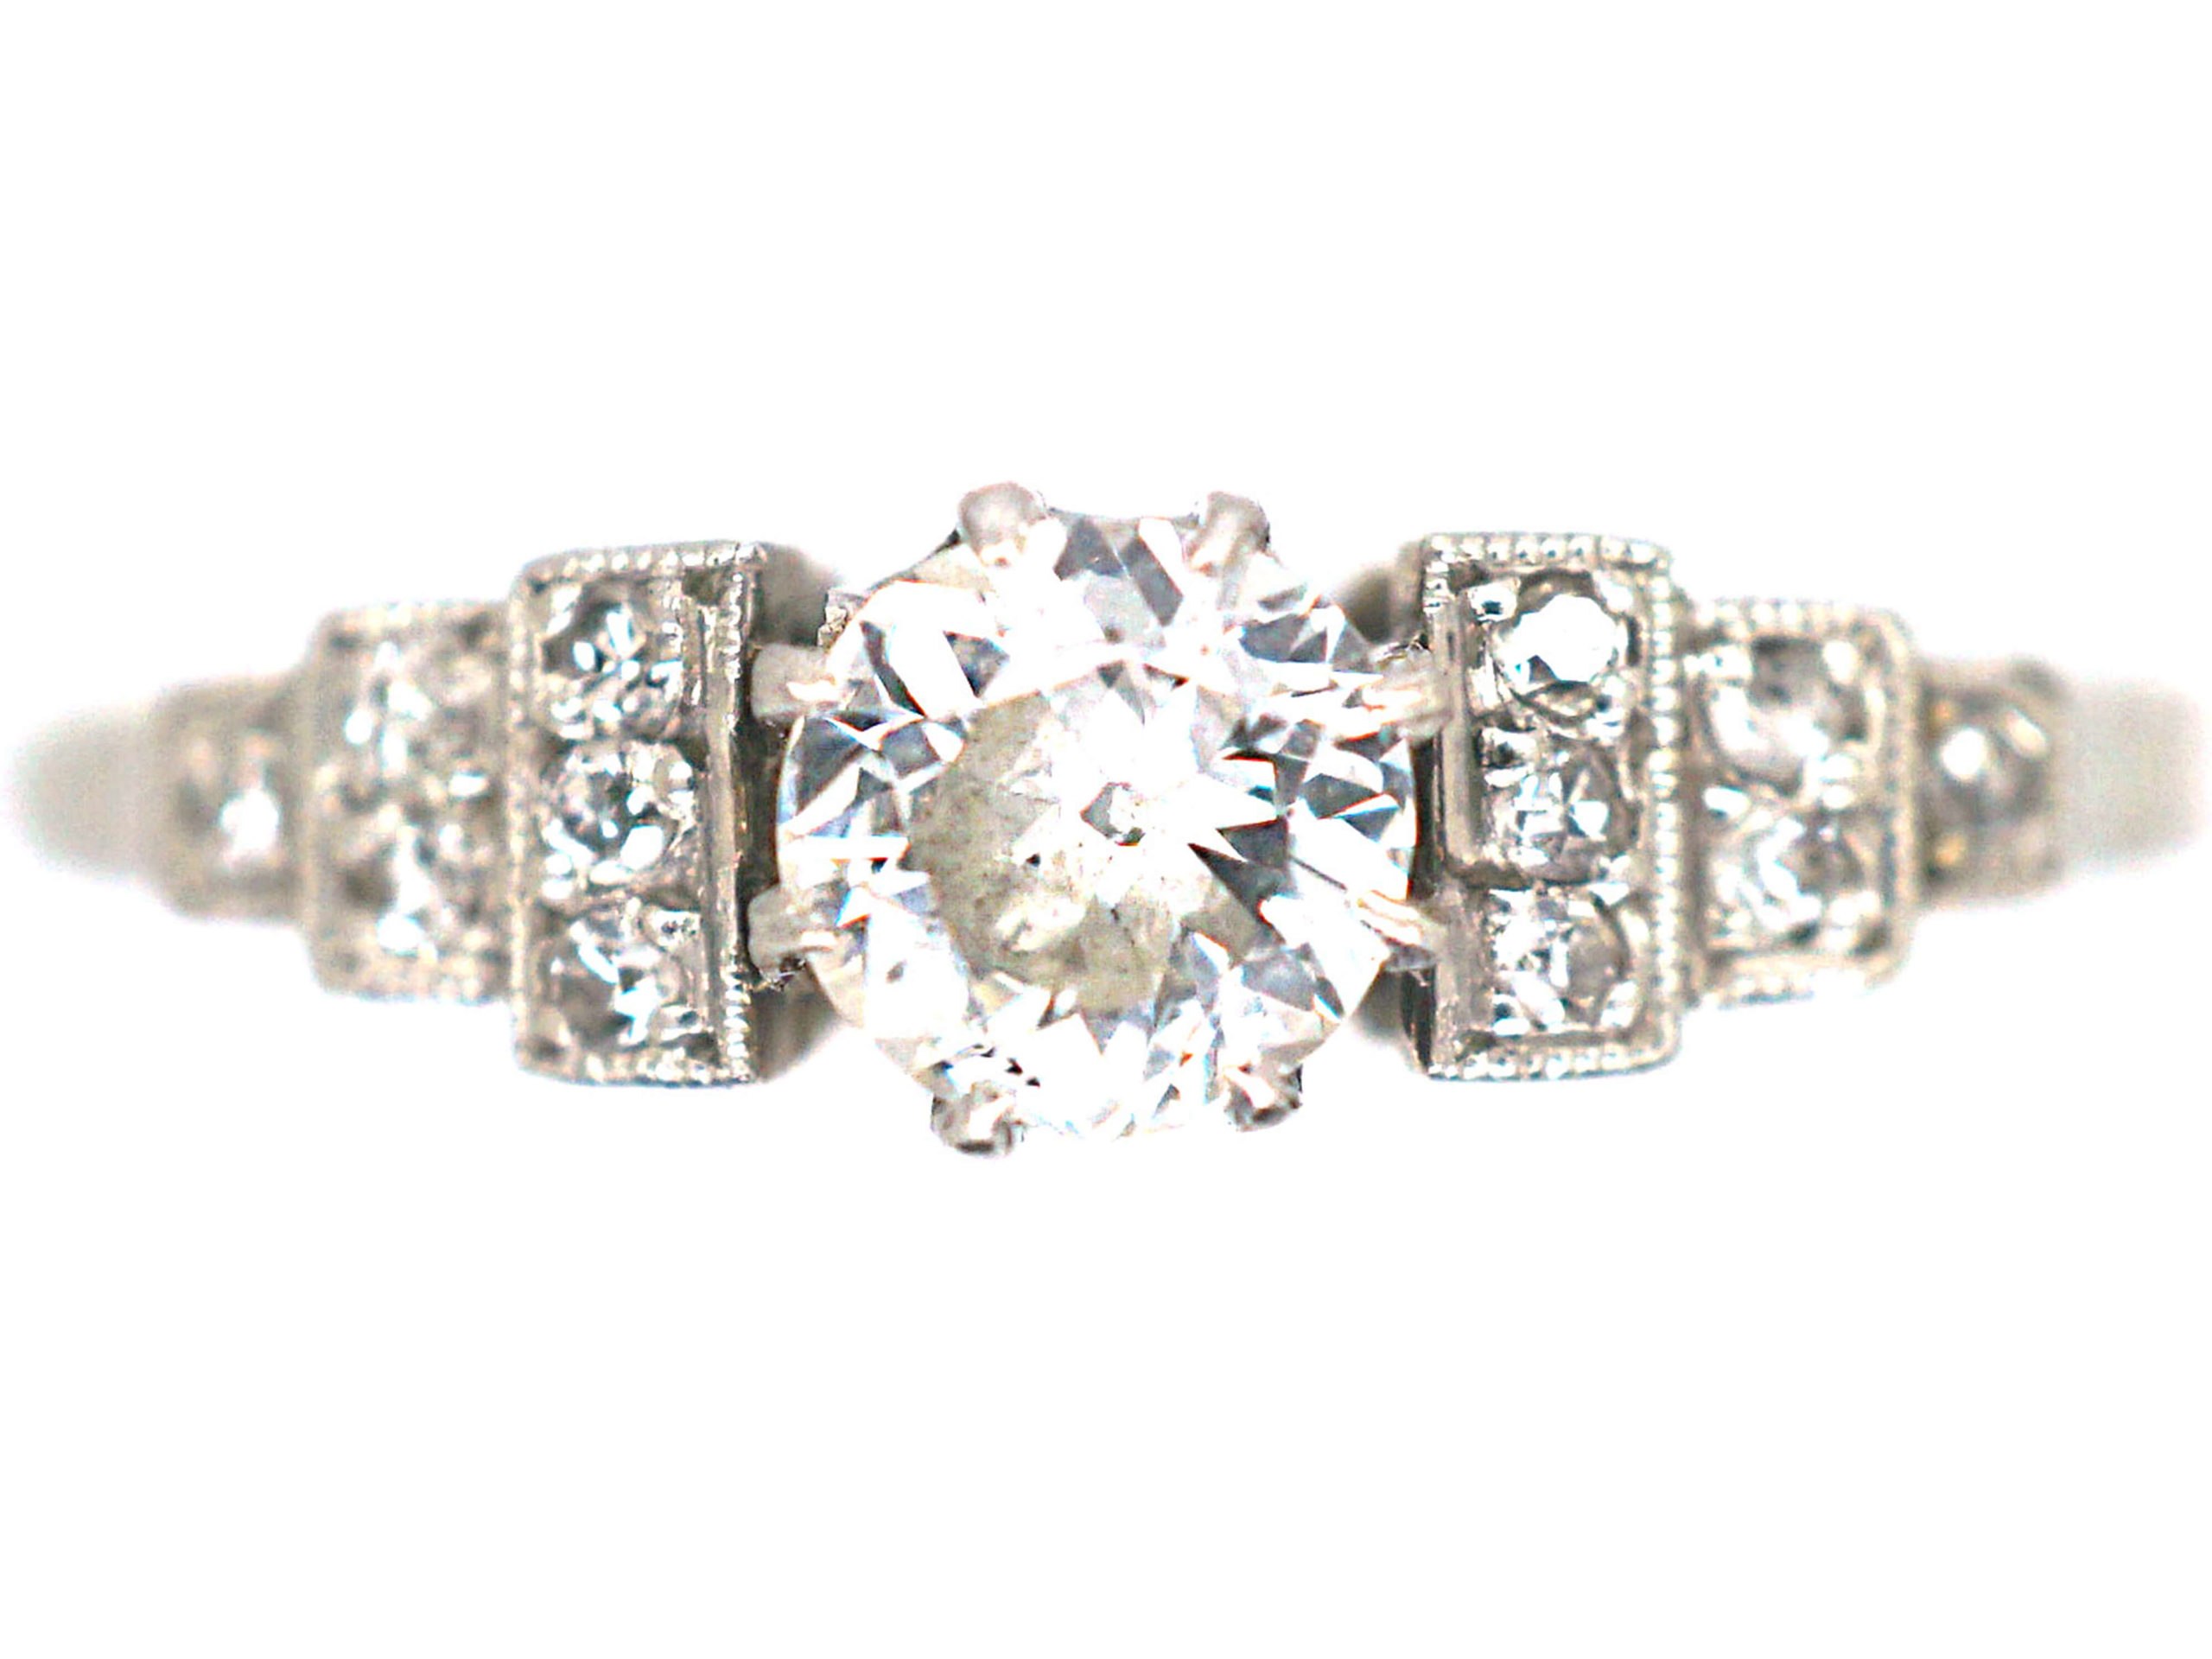 Art Deco 18ct White Gold & Platinum Diamond Solitaire Ring with Step Cut Shoulders